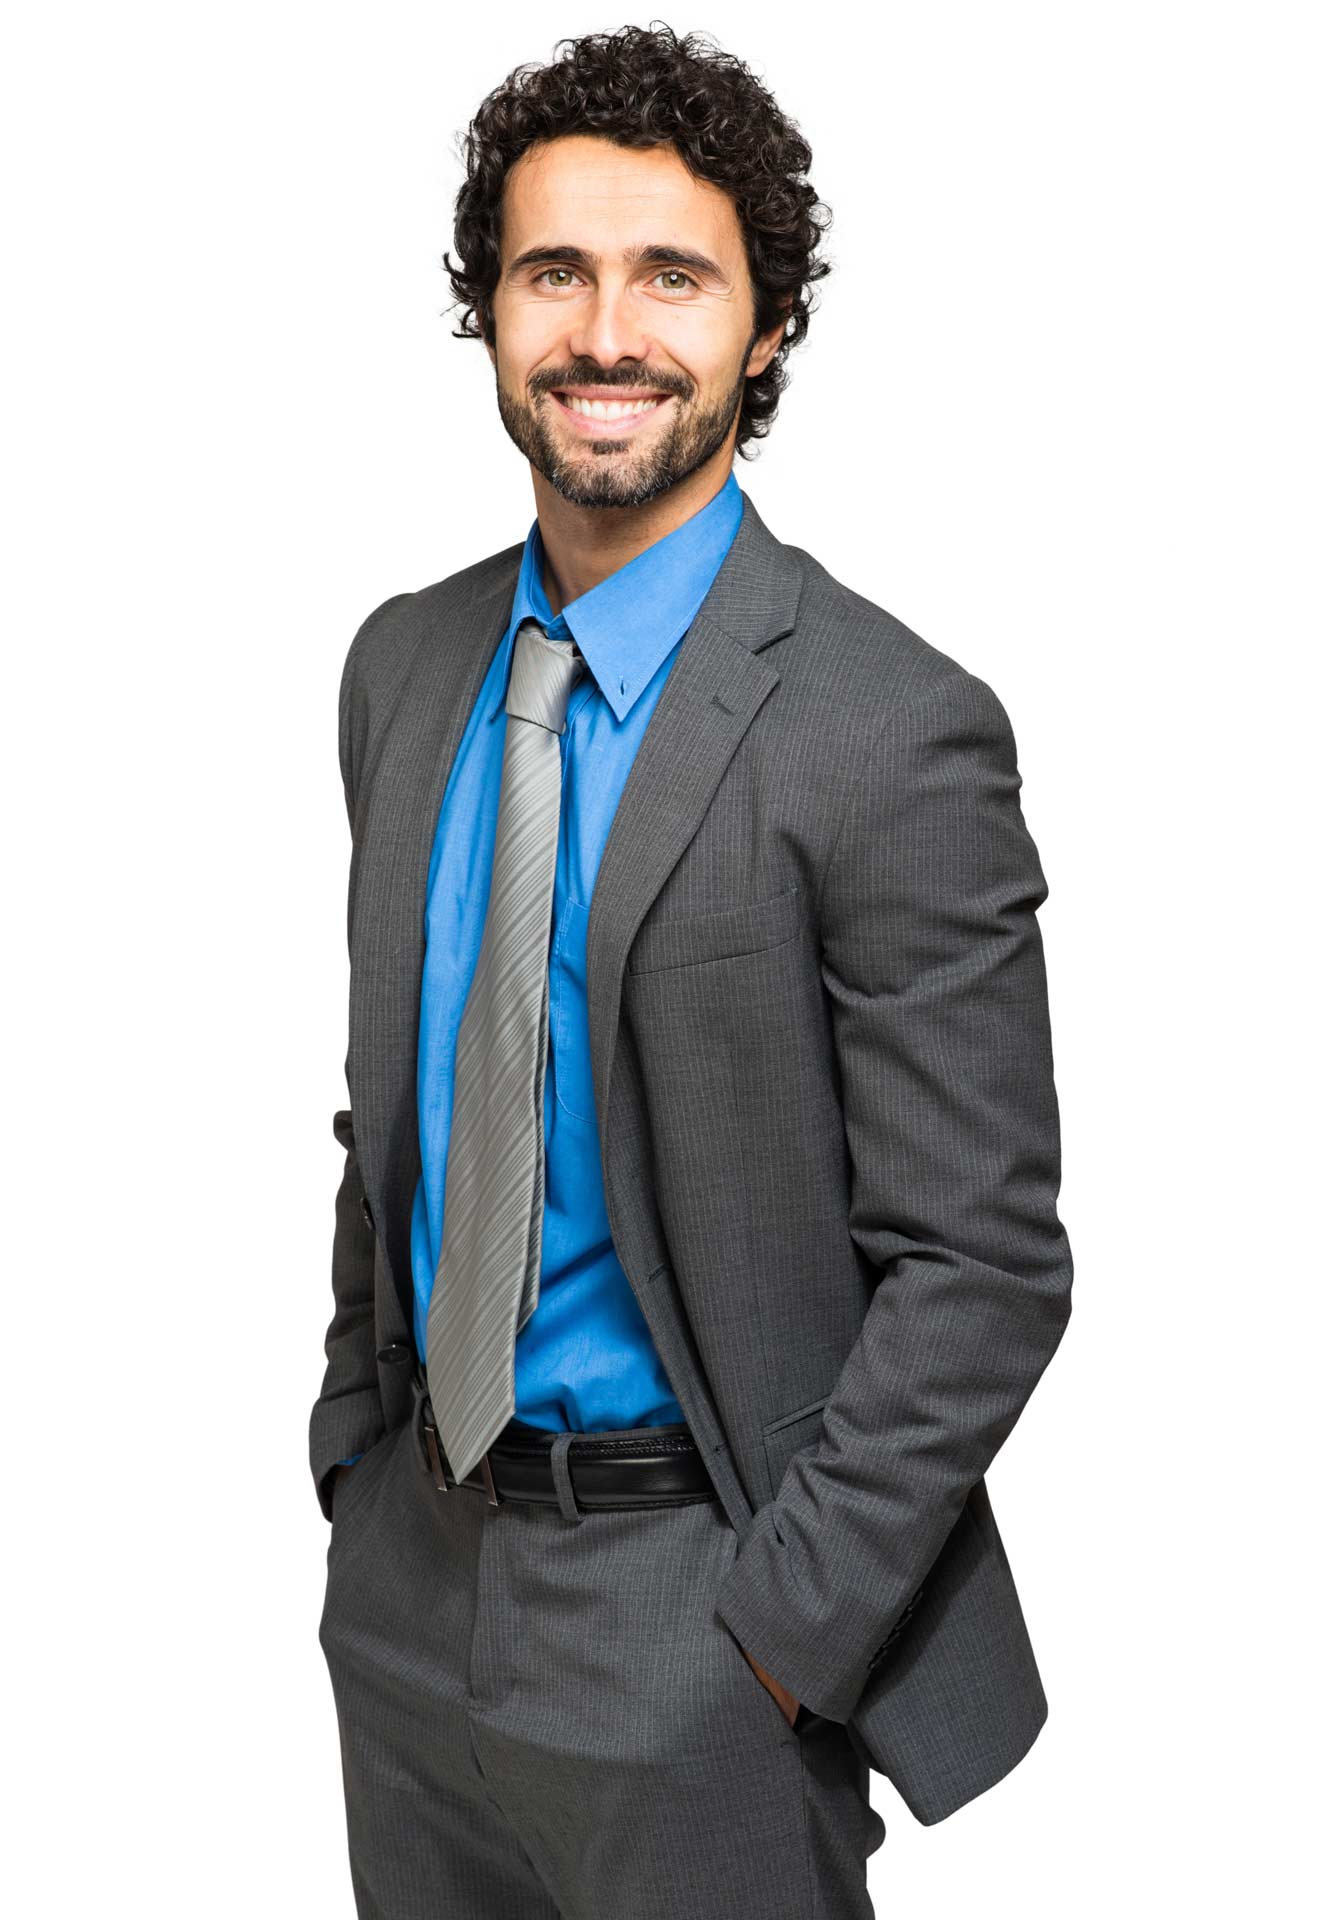 Business man in a suit smiling in front of a white background